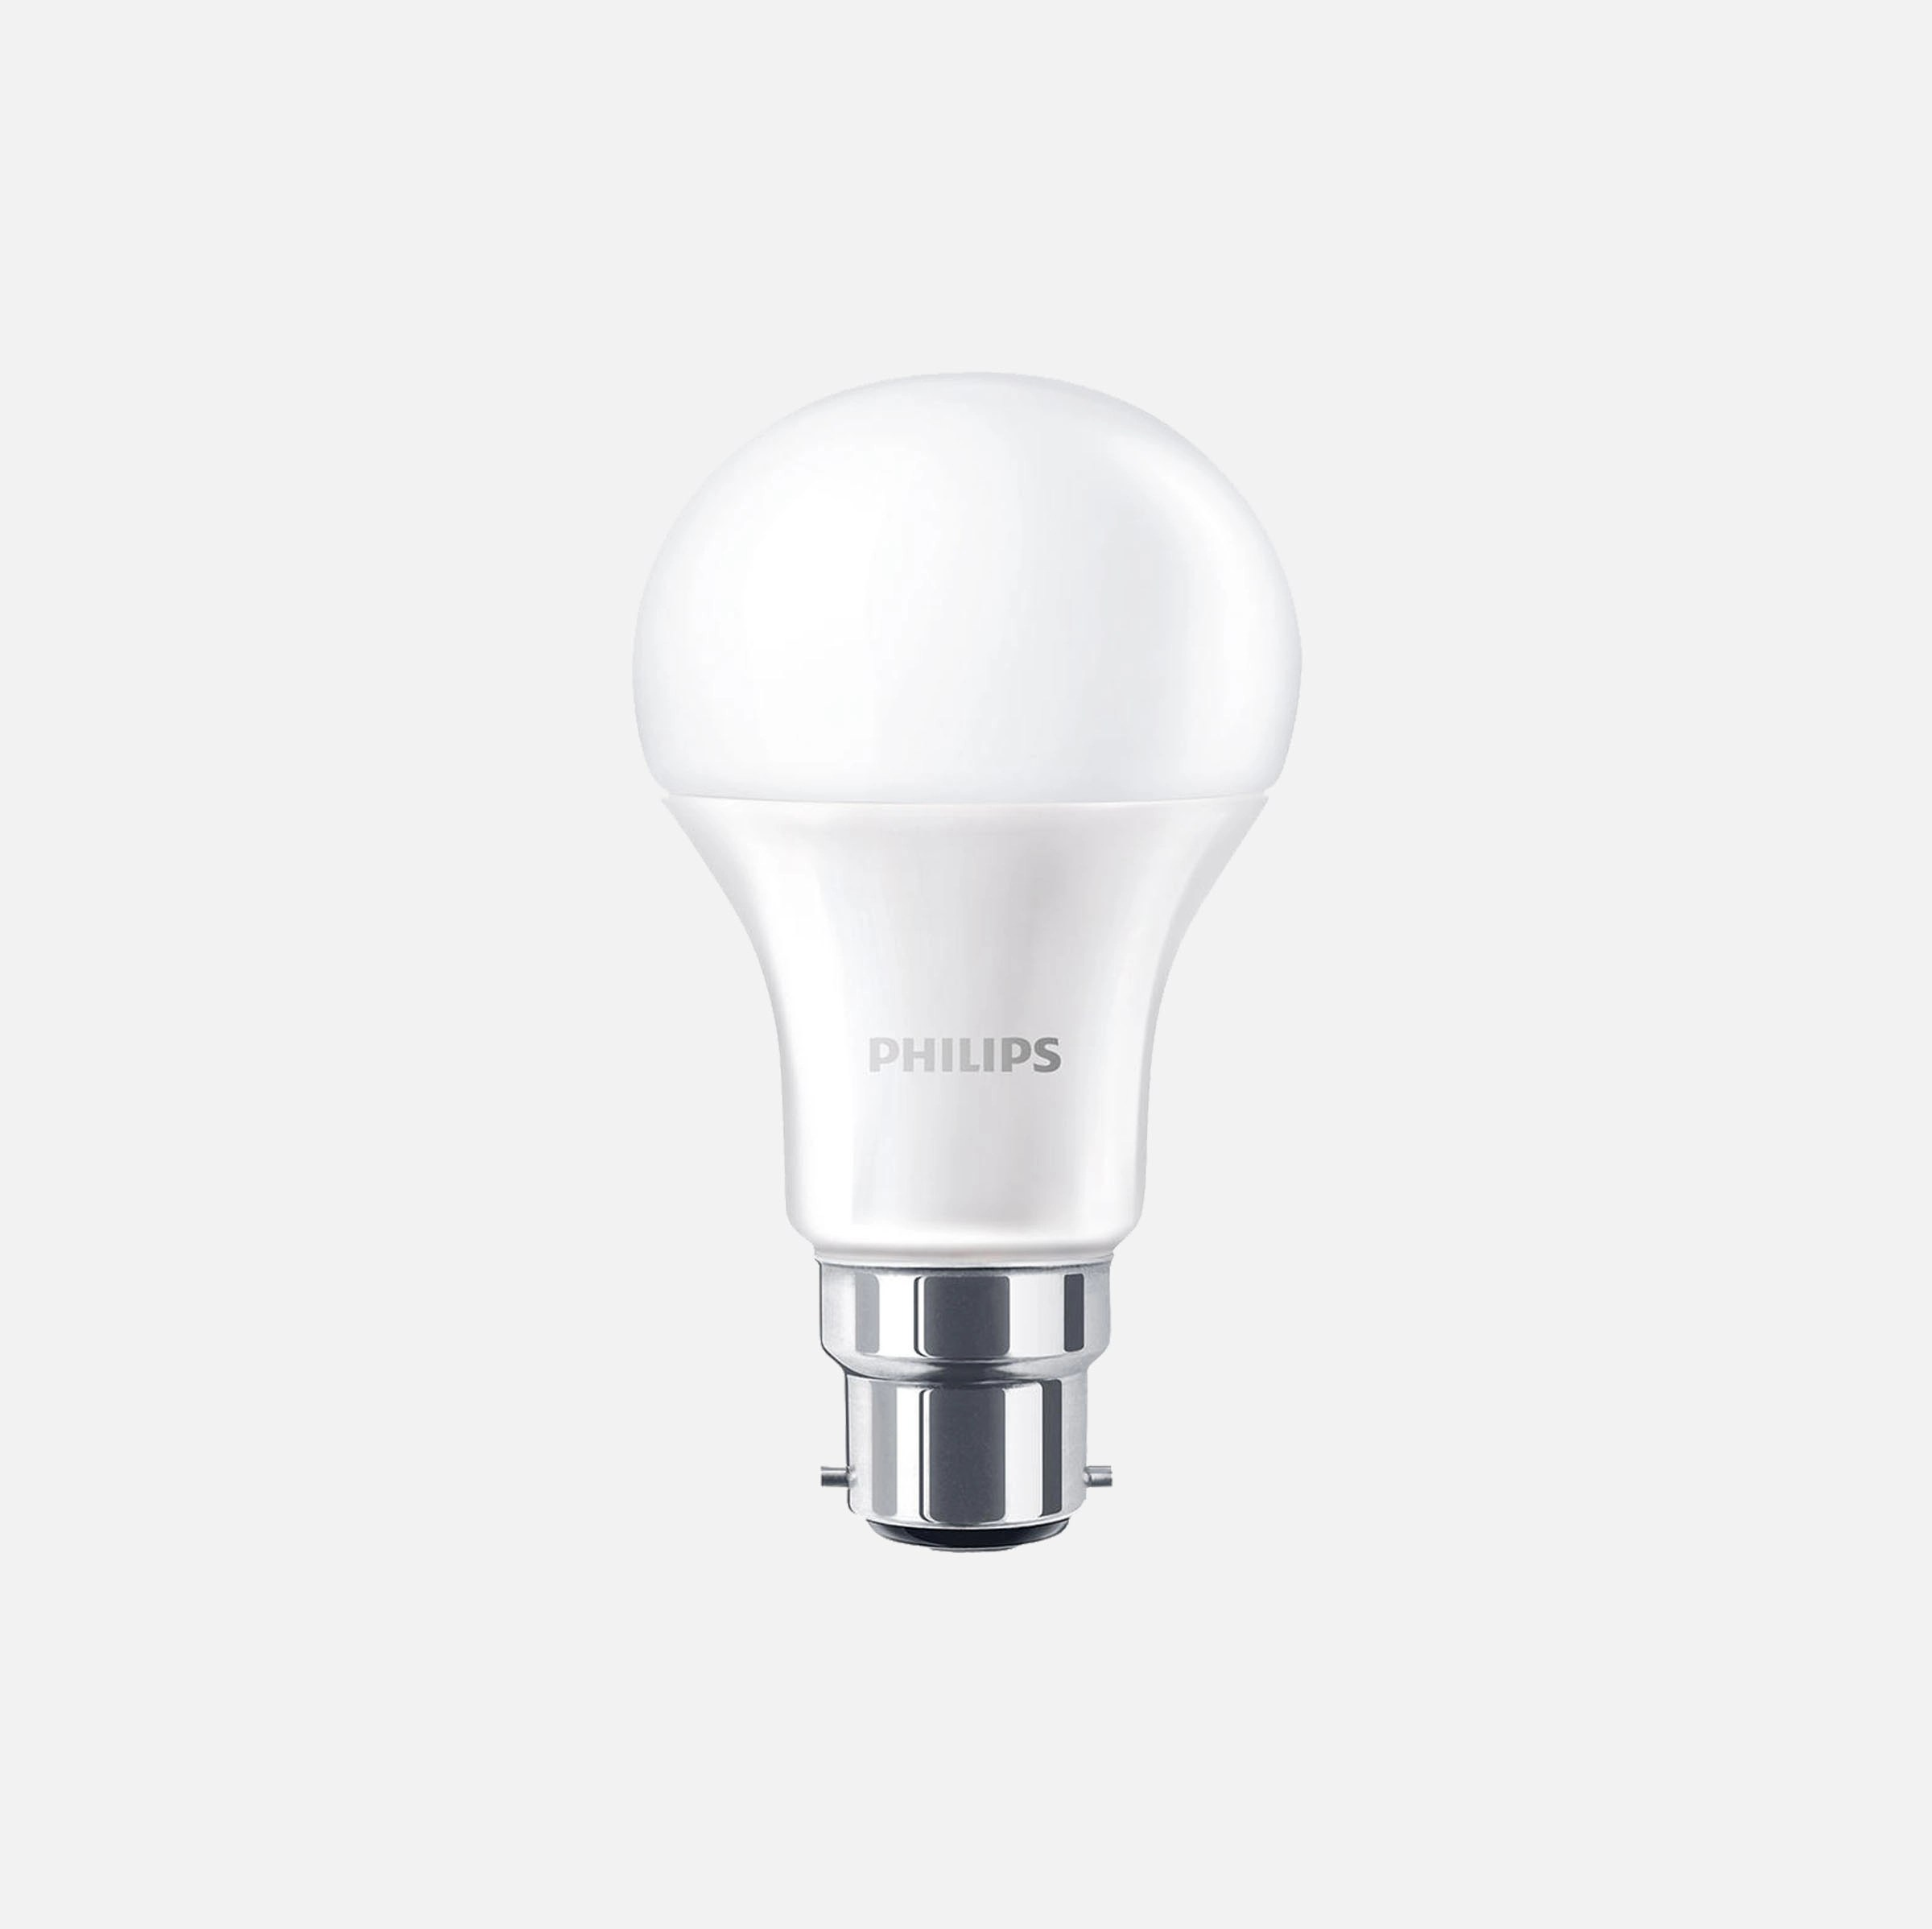 Buy Lightbulbs Light Bulbs Led Energy Saving John Lewis Partners